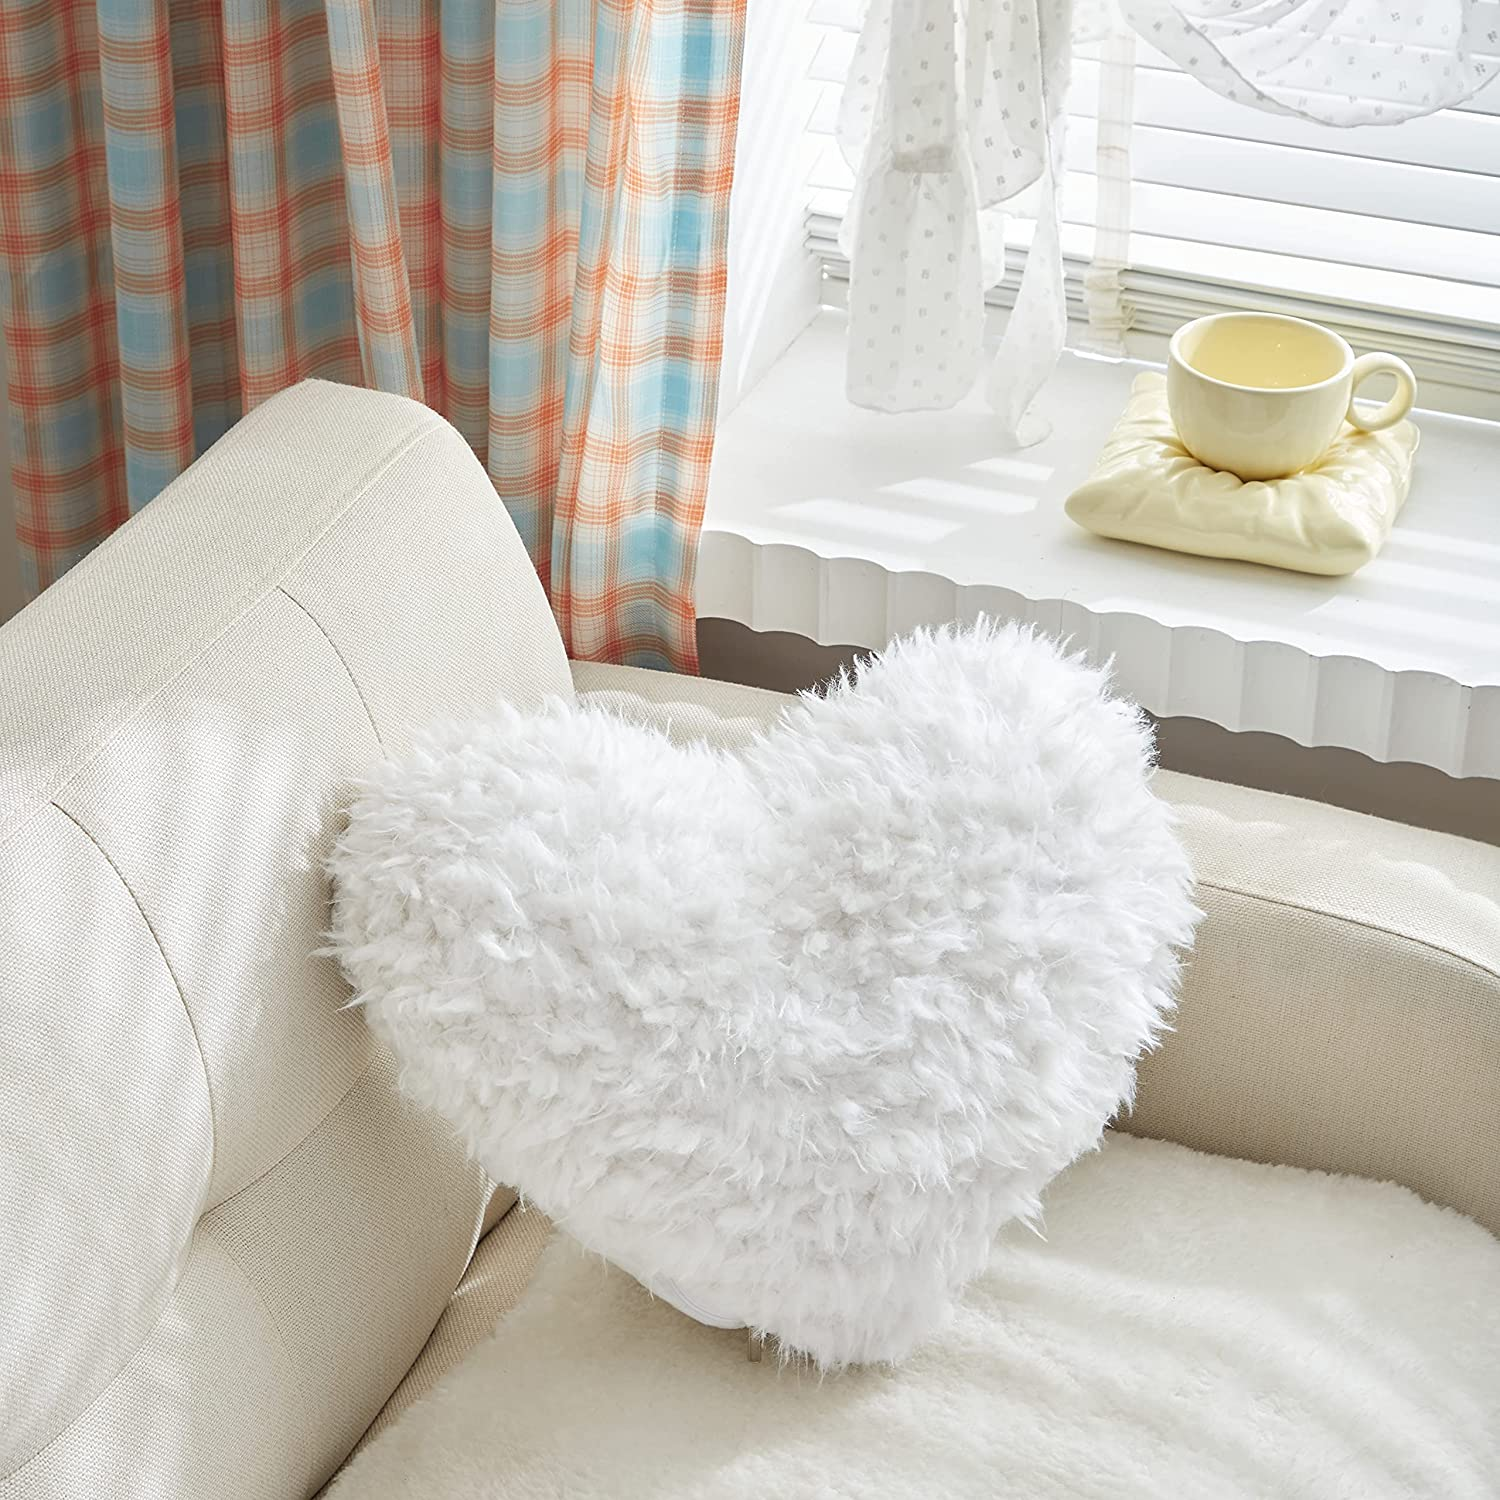 MooWoo Fluffy Heart Throw Pillow with Pillow Cover and Insert, Shaggy Faux Fur, Decorative Design for Indoor and Outdoor, (White, Heart Shape-15.7X15.7Inches)